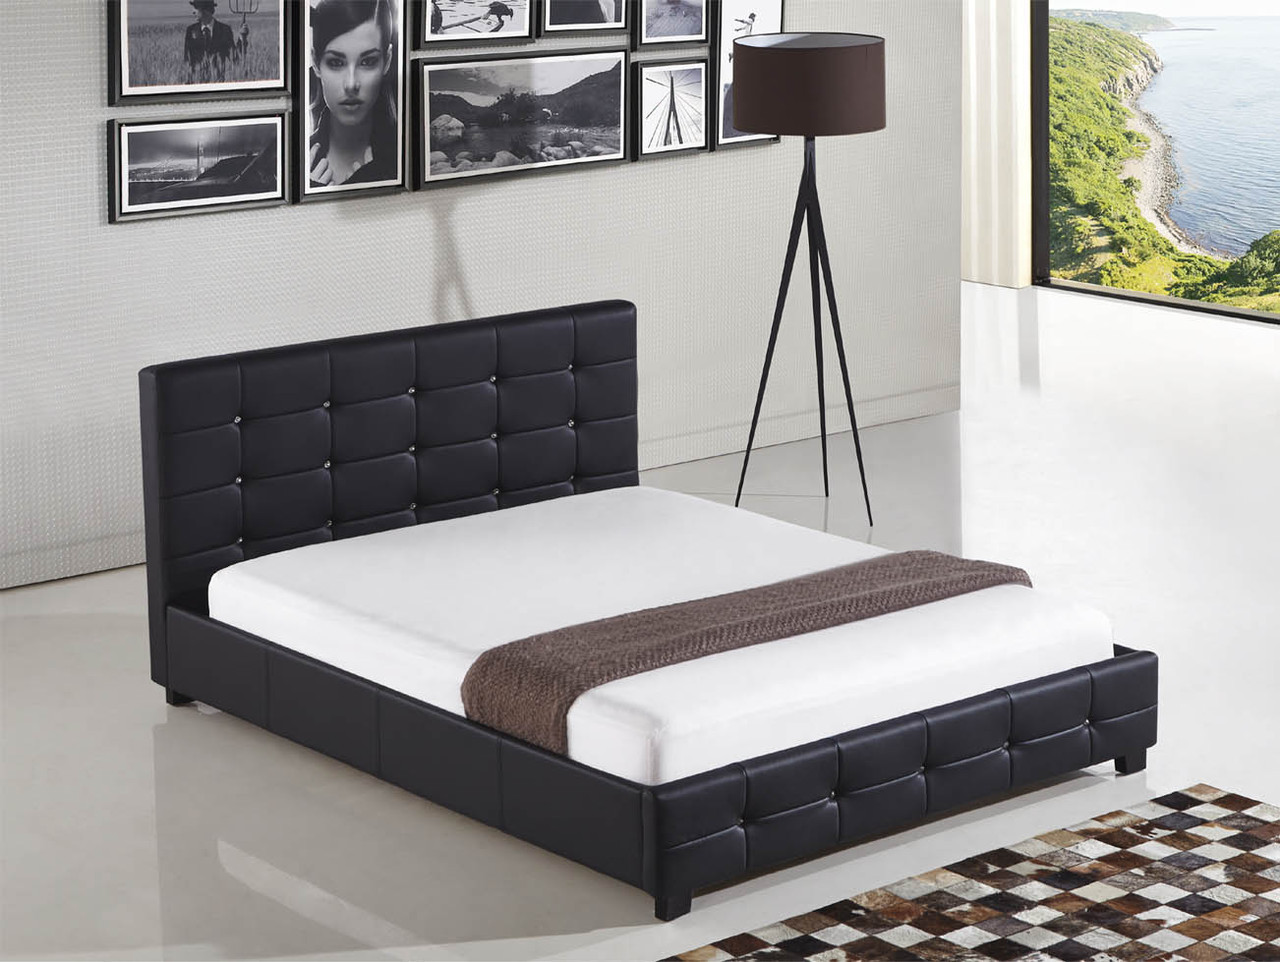 King size mattress prices sydney